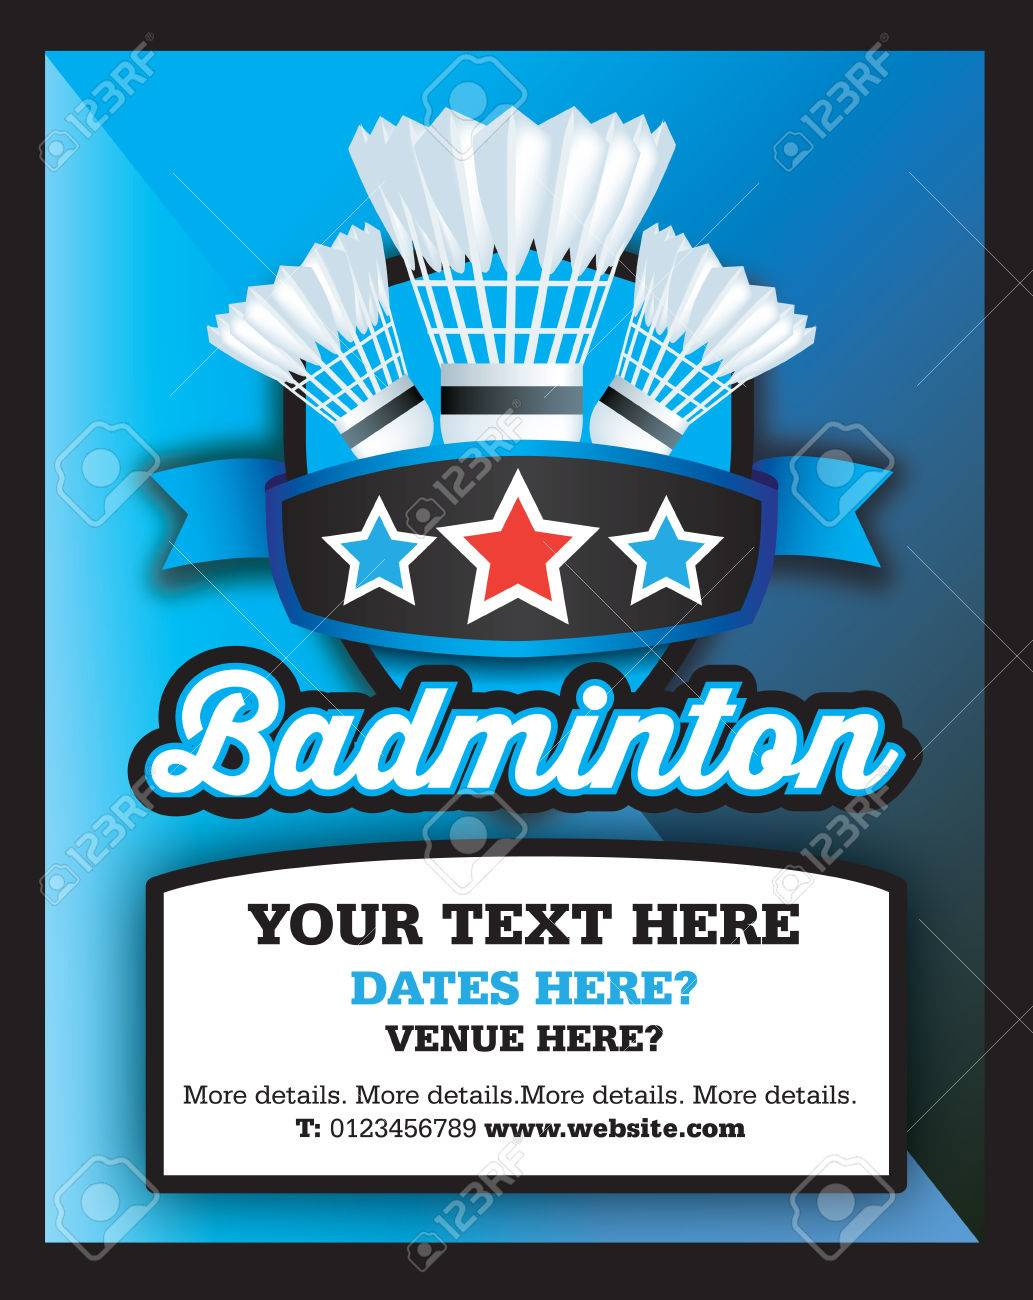 poster ad advertisement marketing or promotion flyer for a badminton club or event stock vector